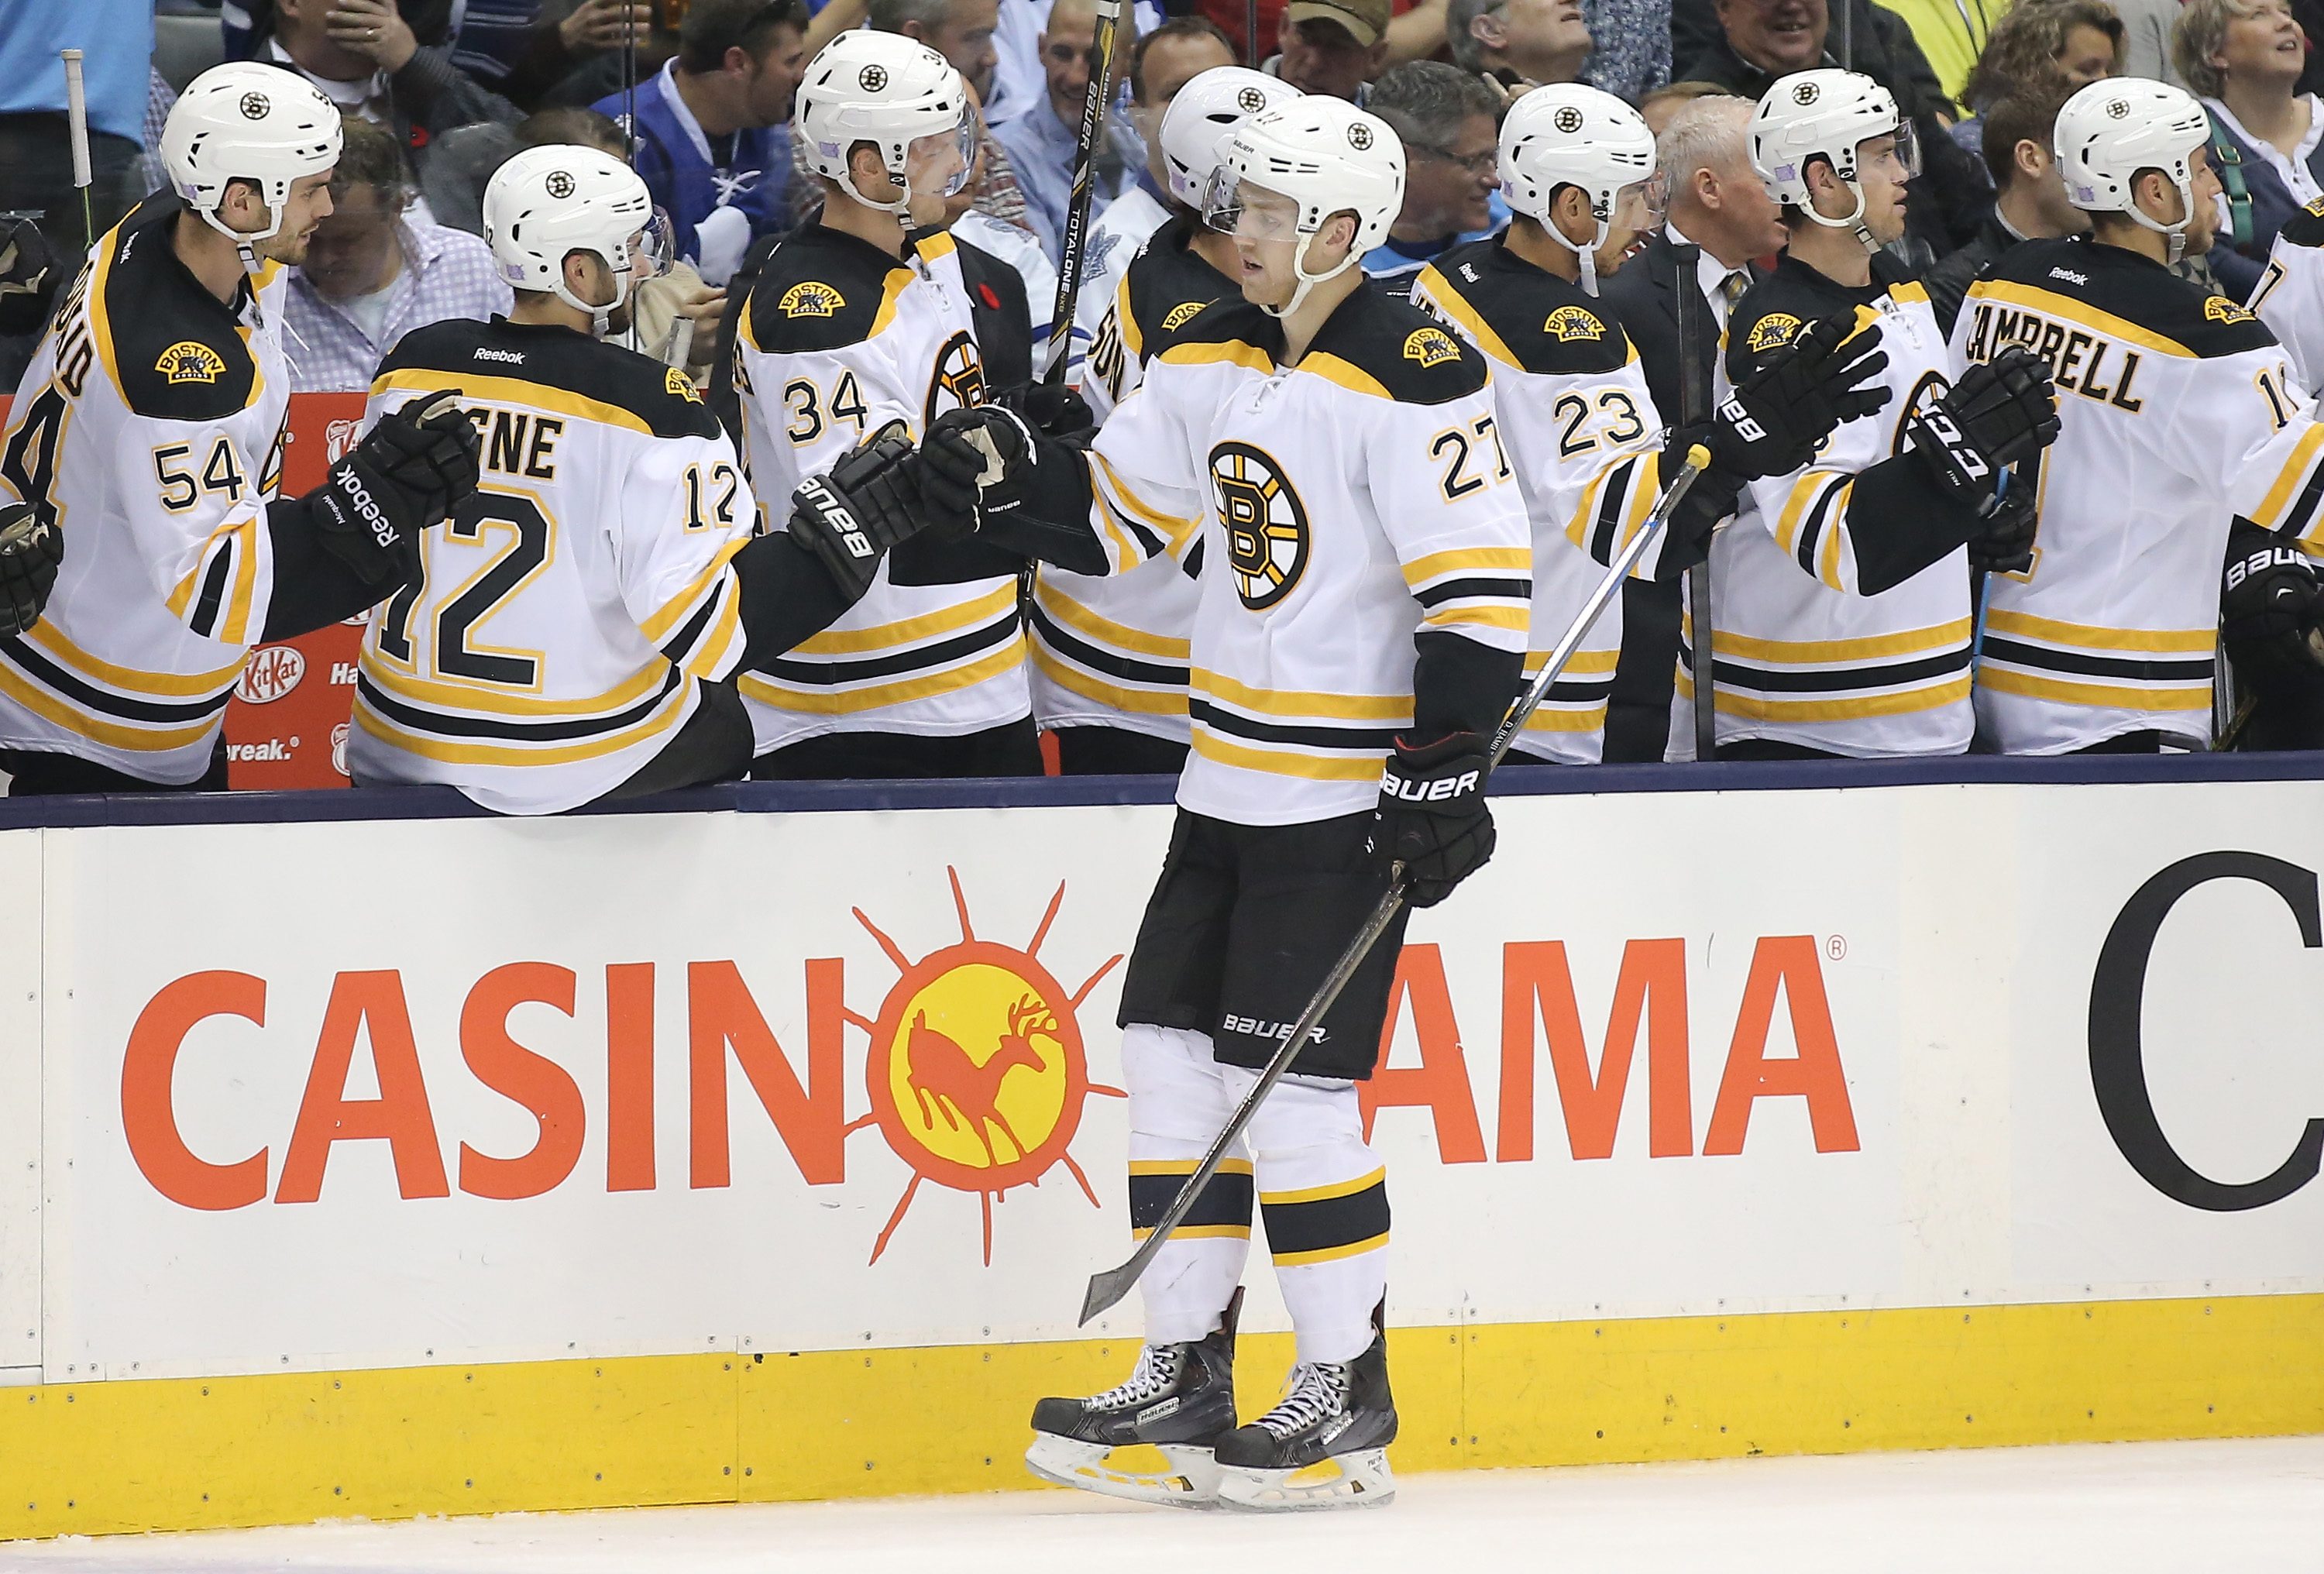 Oct 25, 2014; Toronto, Ontario, CAN; Boston Bruins defenseman Dougie Hamilton (27) is congratulated by teammates after scoring a goal in the third period against the Toronto Maple Leafs at Air Canada Centre. The Bruins beat the Maple Leafs 4-1. (Tom Szczerbowski-USA TODAY Sports)